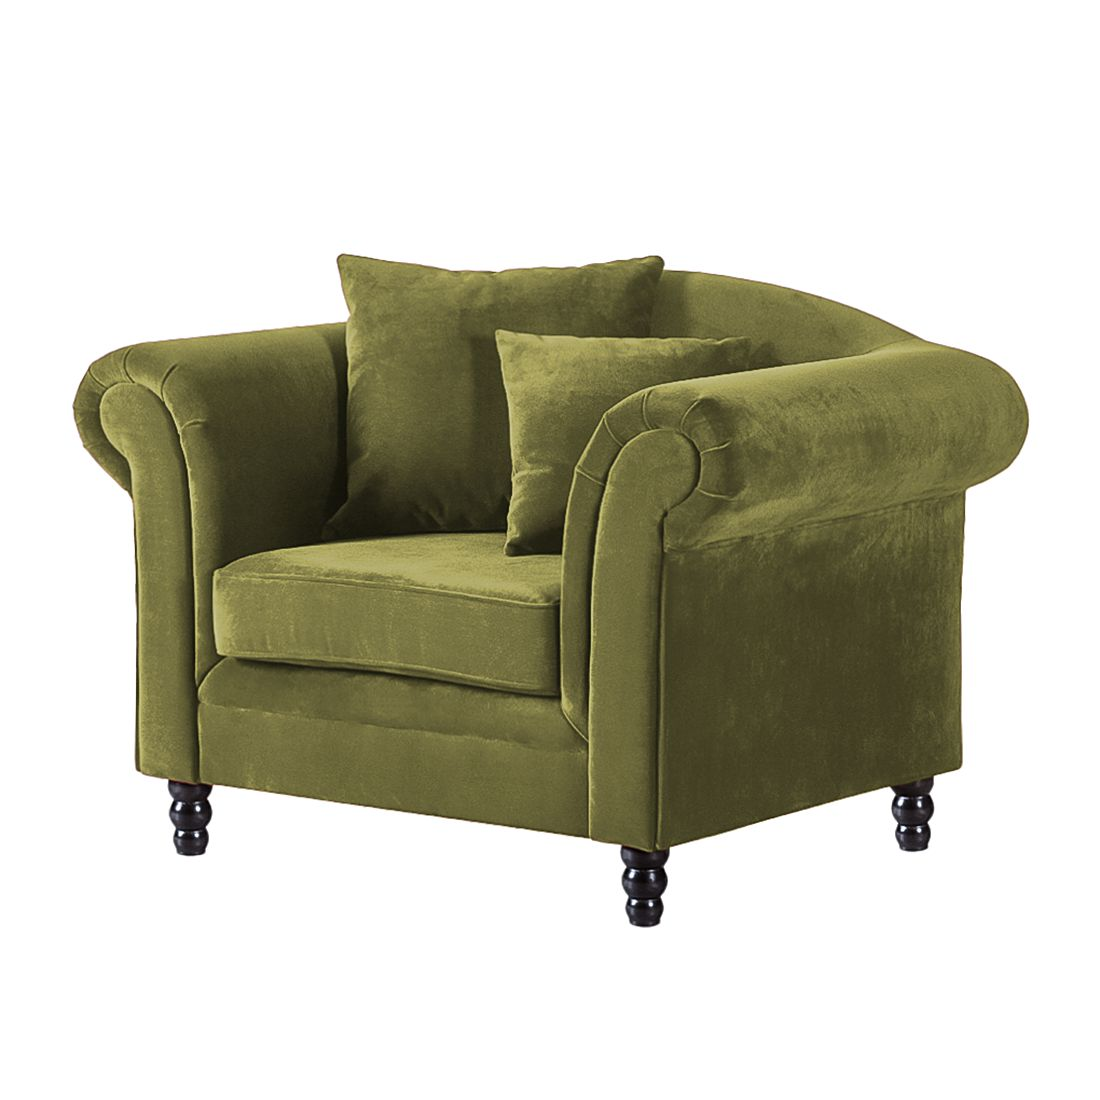 Fauteuil York - Velours vert olive, Jack and Alice